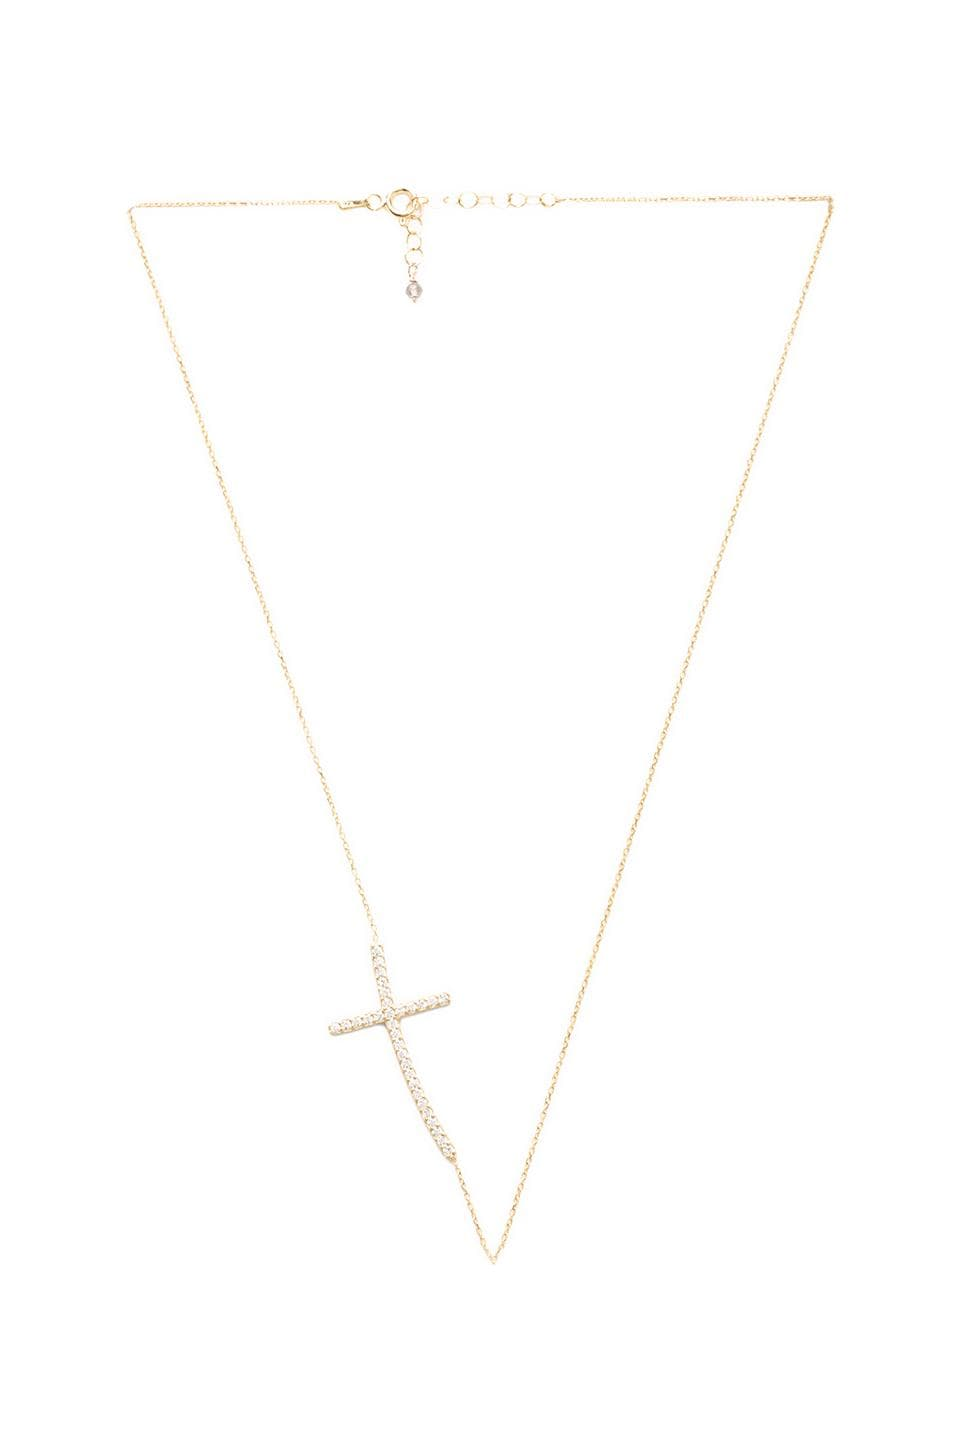 Natalie B Jewelry Ottoman Sideways Cross Necklace in Gold